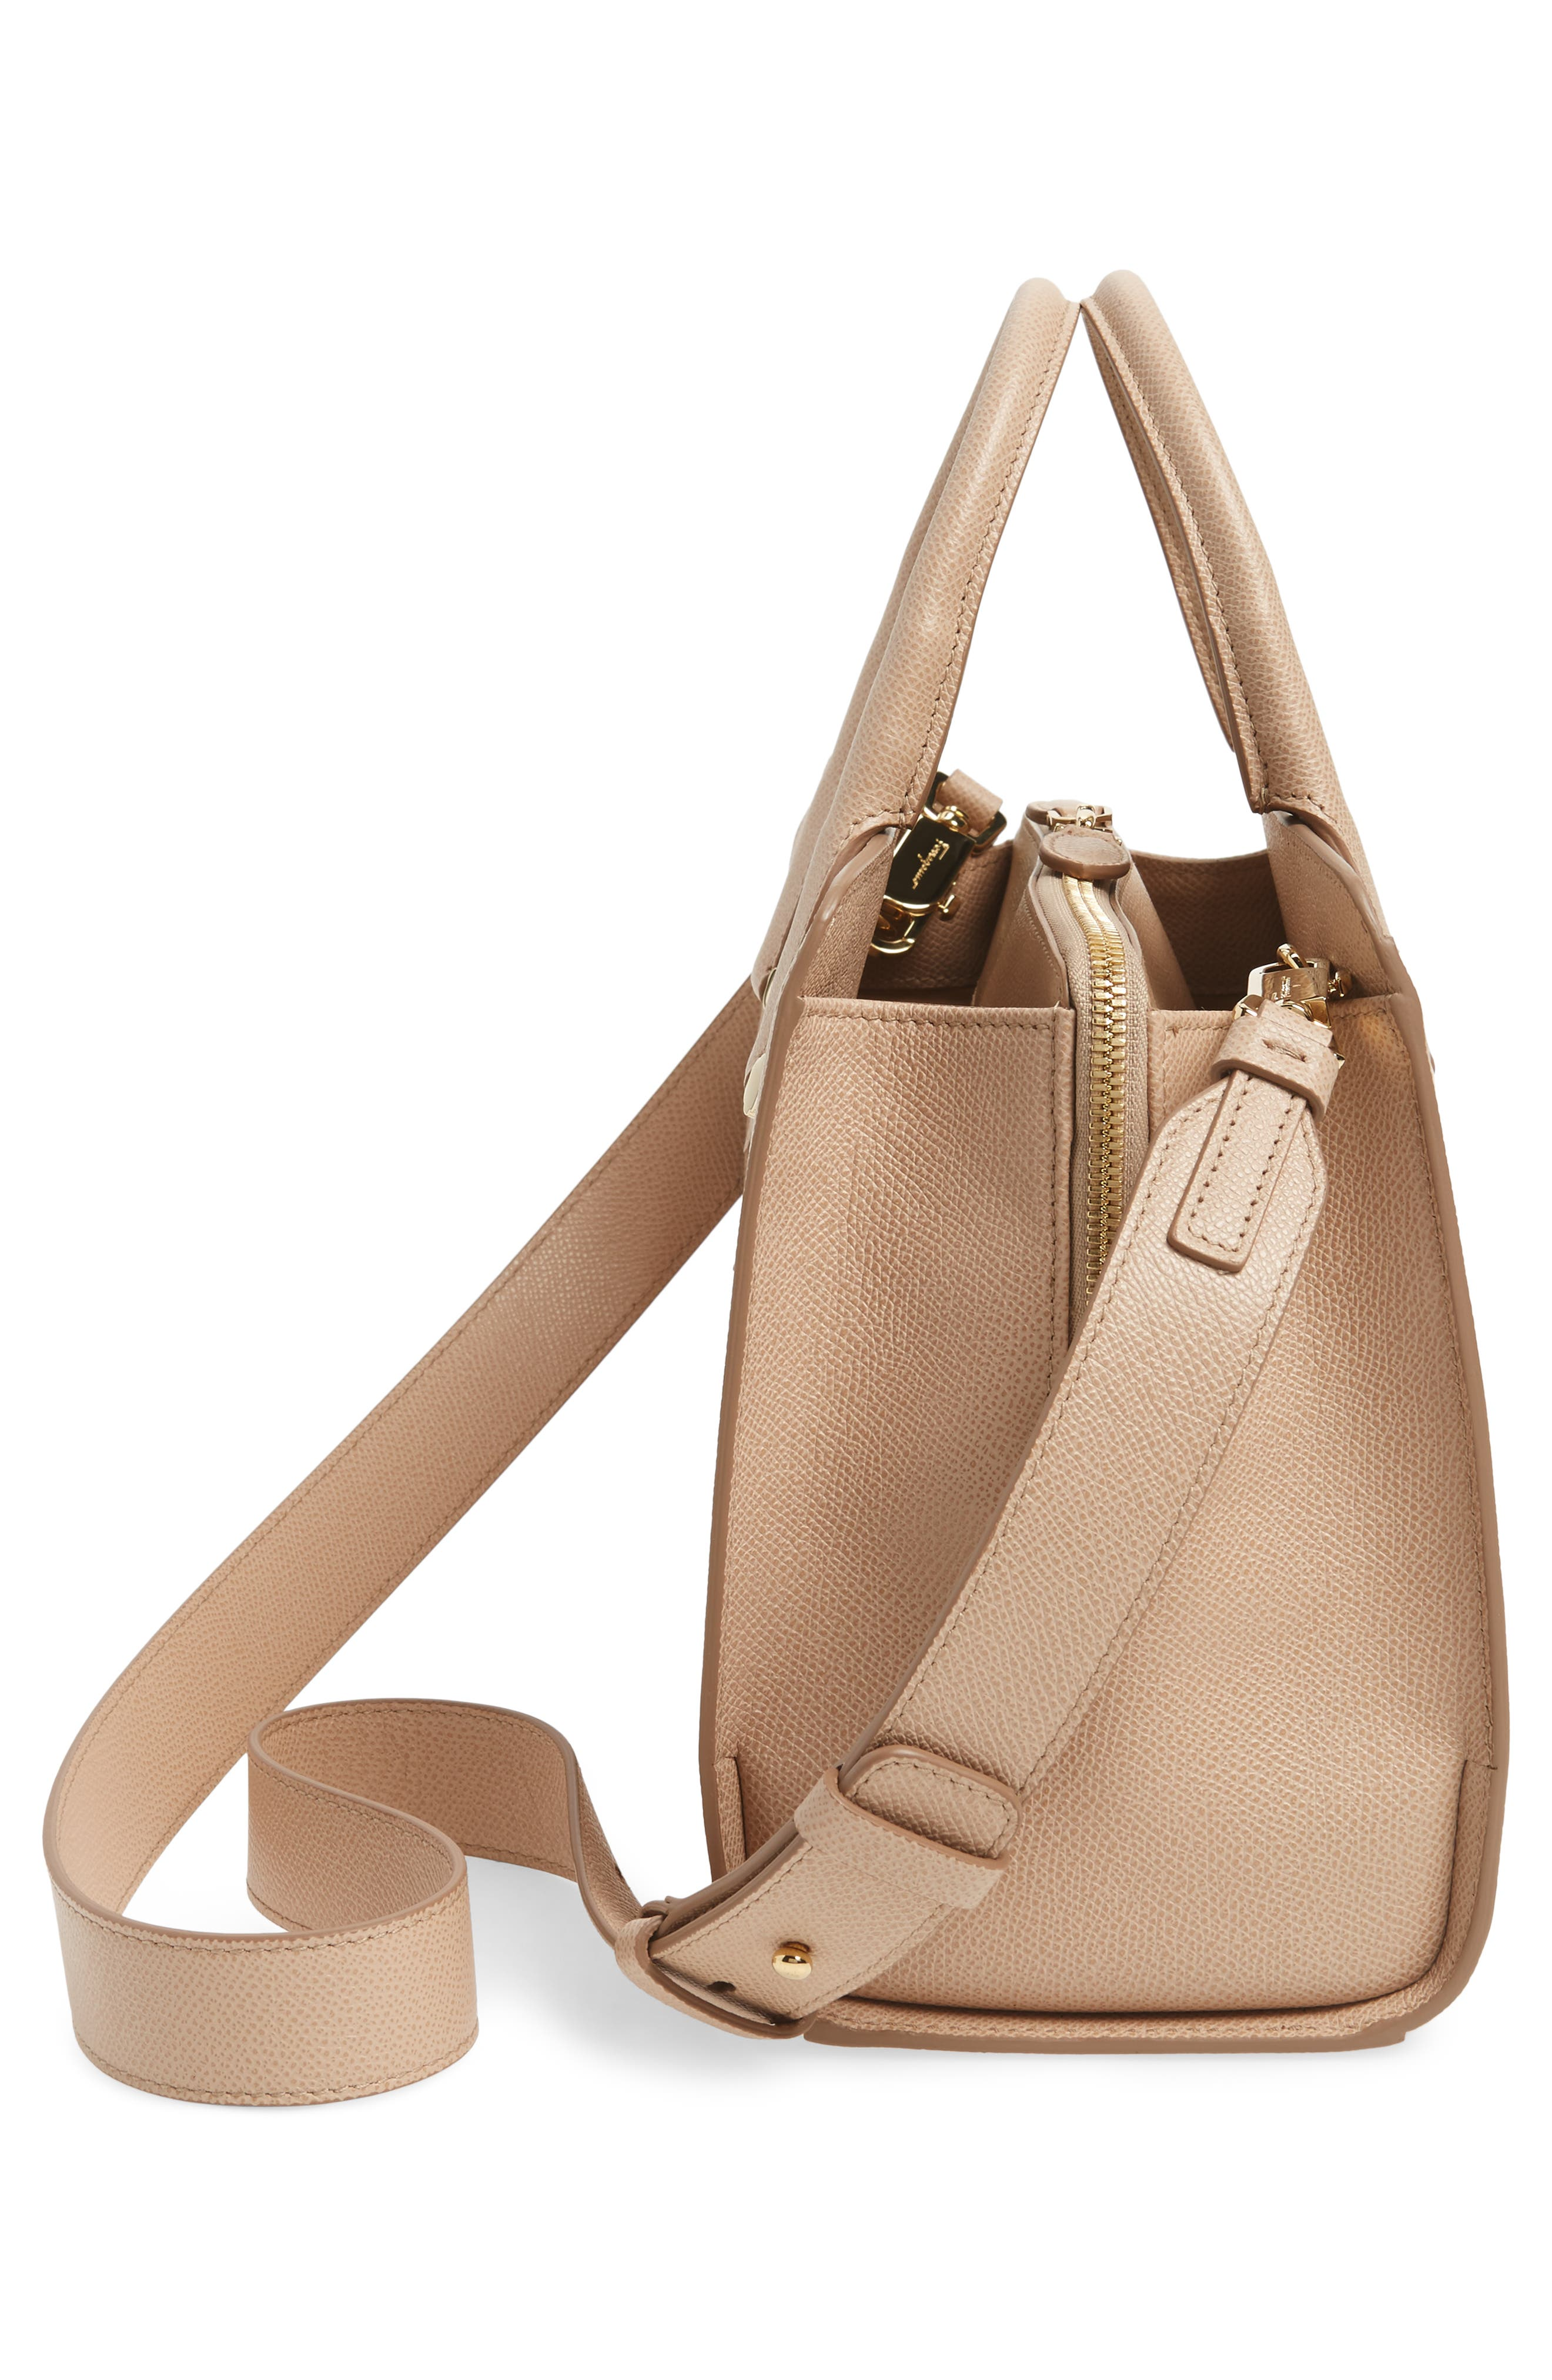 Small Today Leather Satchel,                             Alternate thumbnail 5, color,                             Almond/ Sable